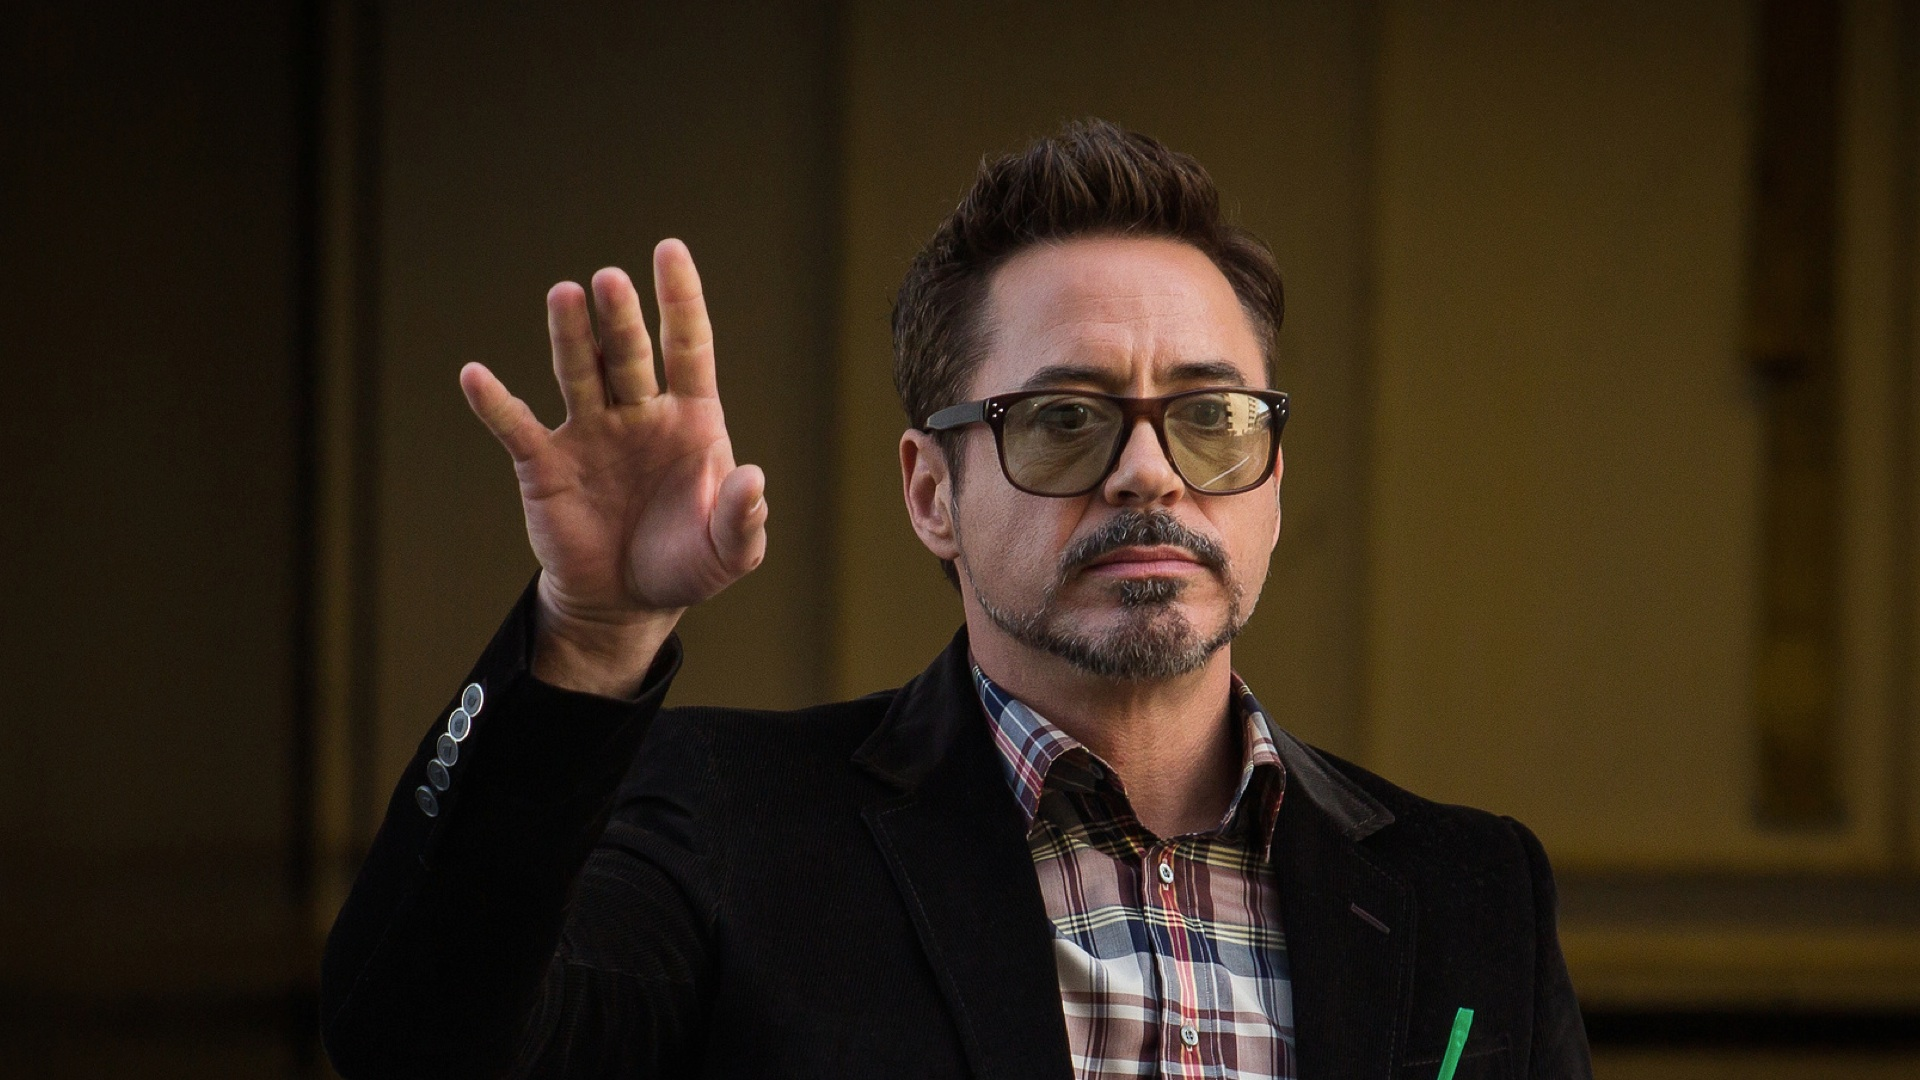 Tony-Stark-Robert-Downey-Jr-by-Justin-Brown-copy